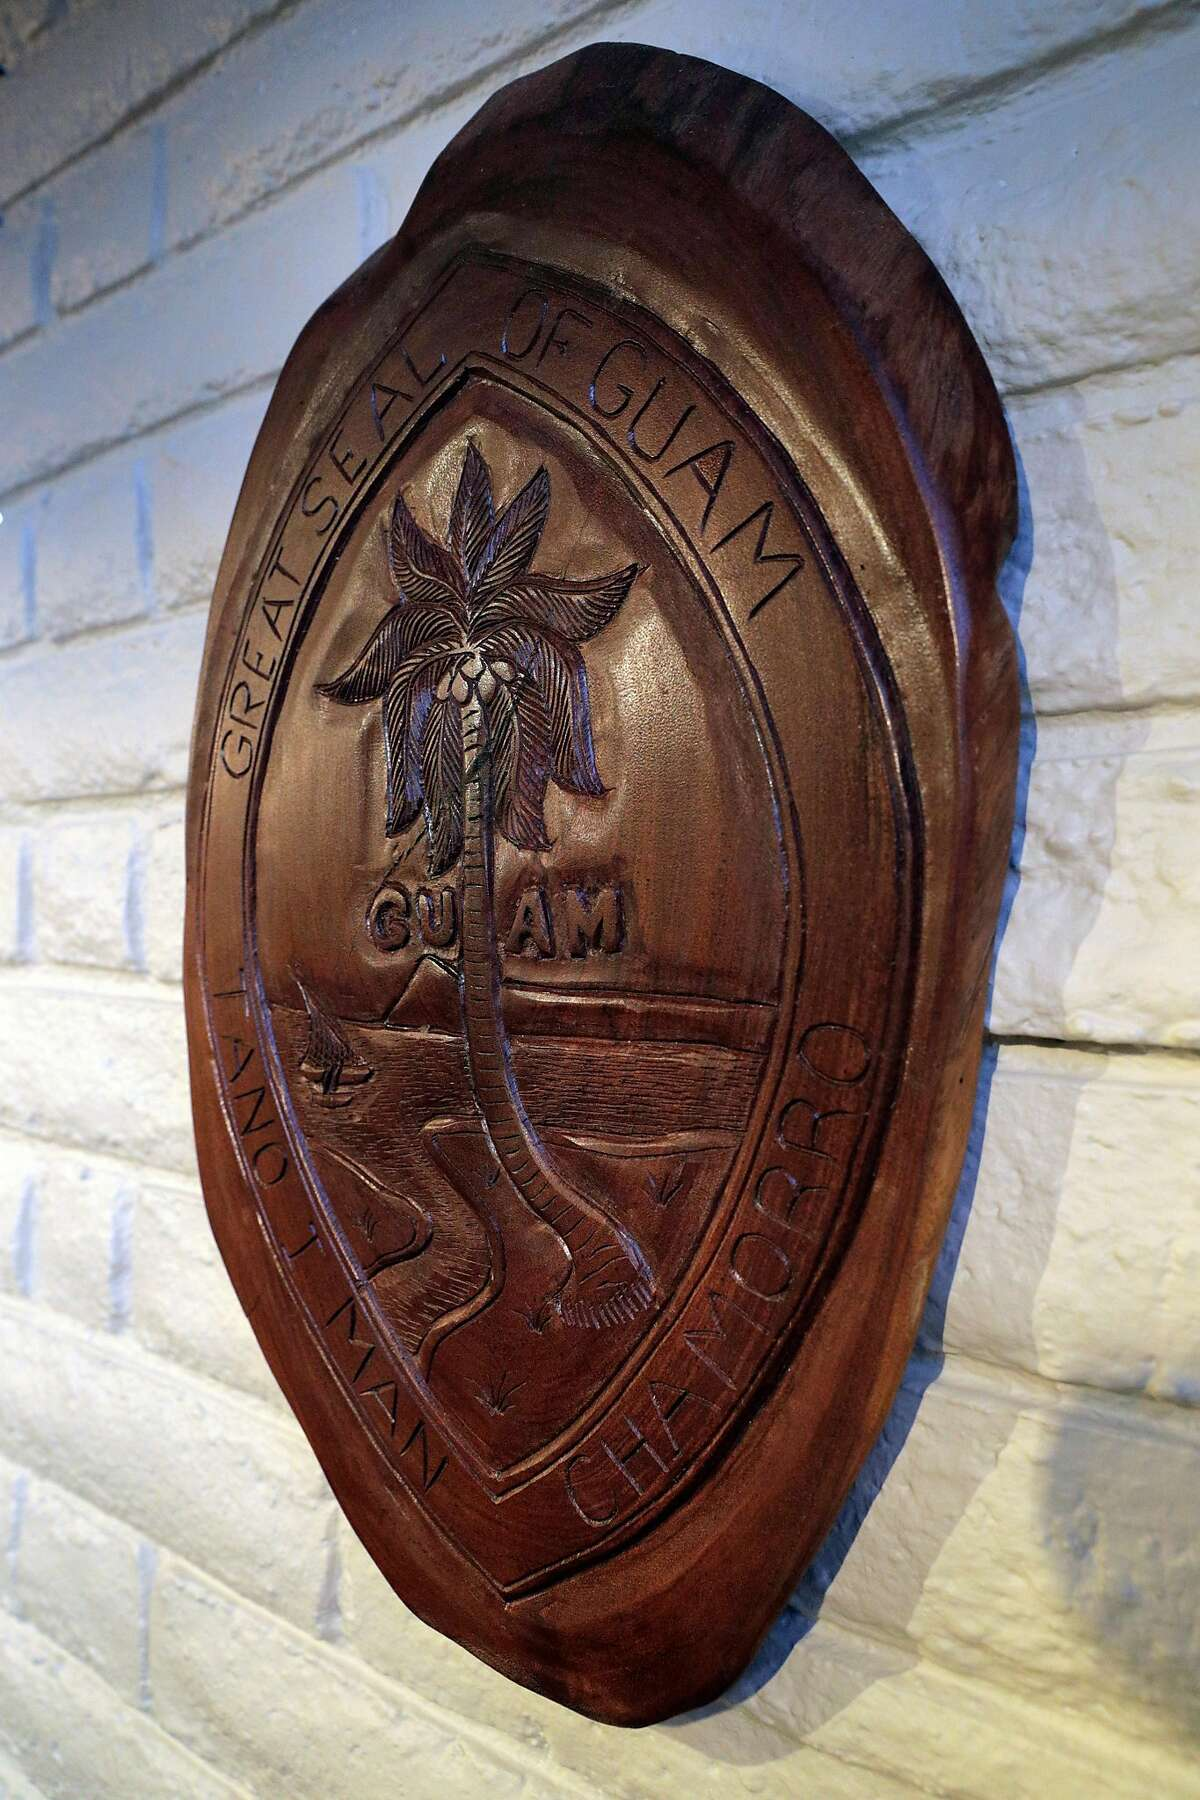 A hand-carved plaque with the Seal of Guam at Prubechu, a Guamanian restaurant that just reopened in the Mission in San Francisco, Calif., on Thursday, February 6, 2020.